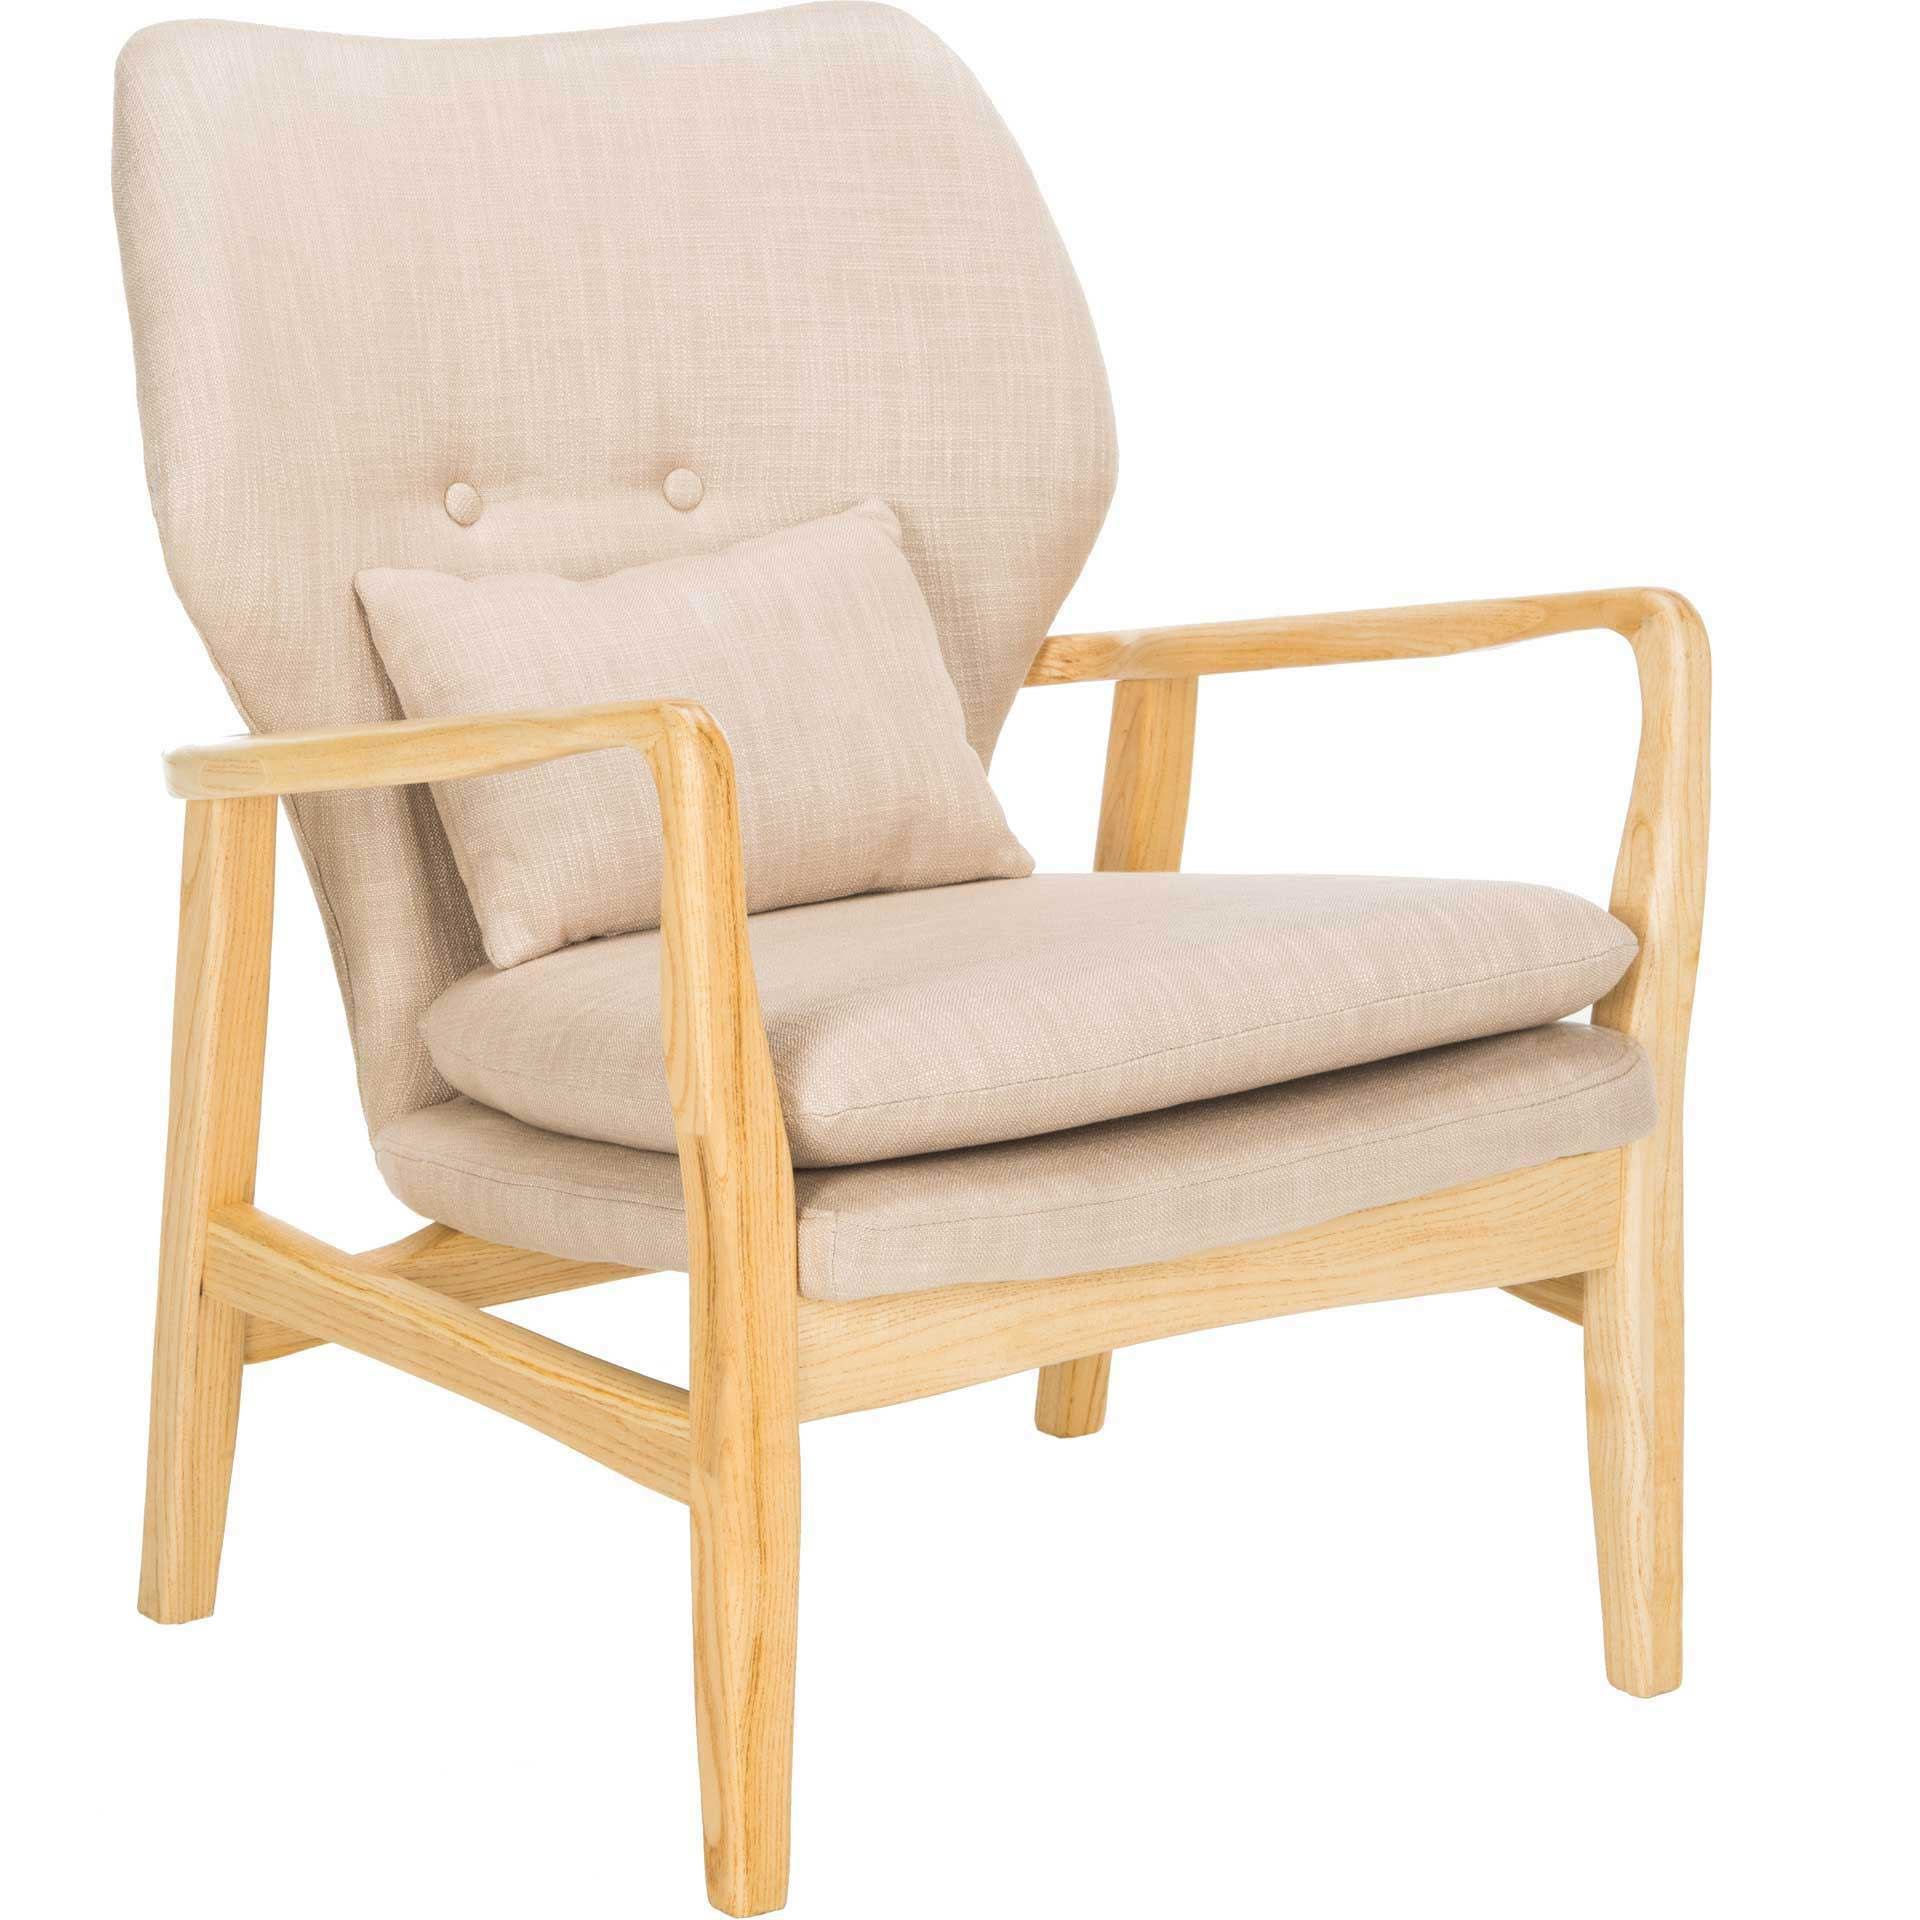 Tarly Accent Chair Beige/Natural